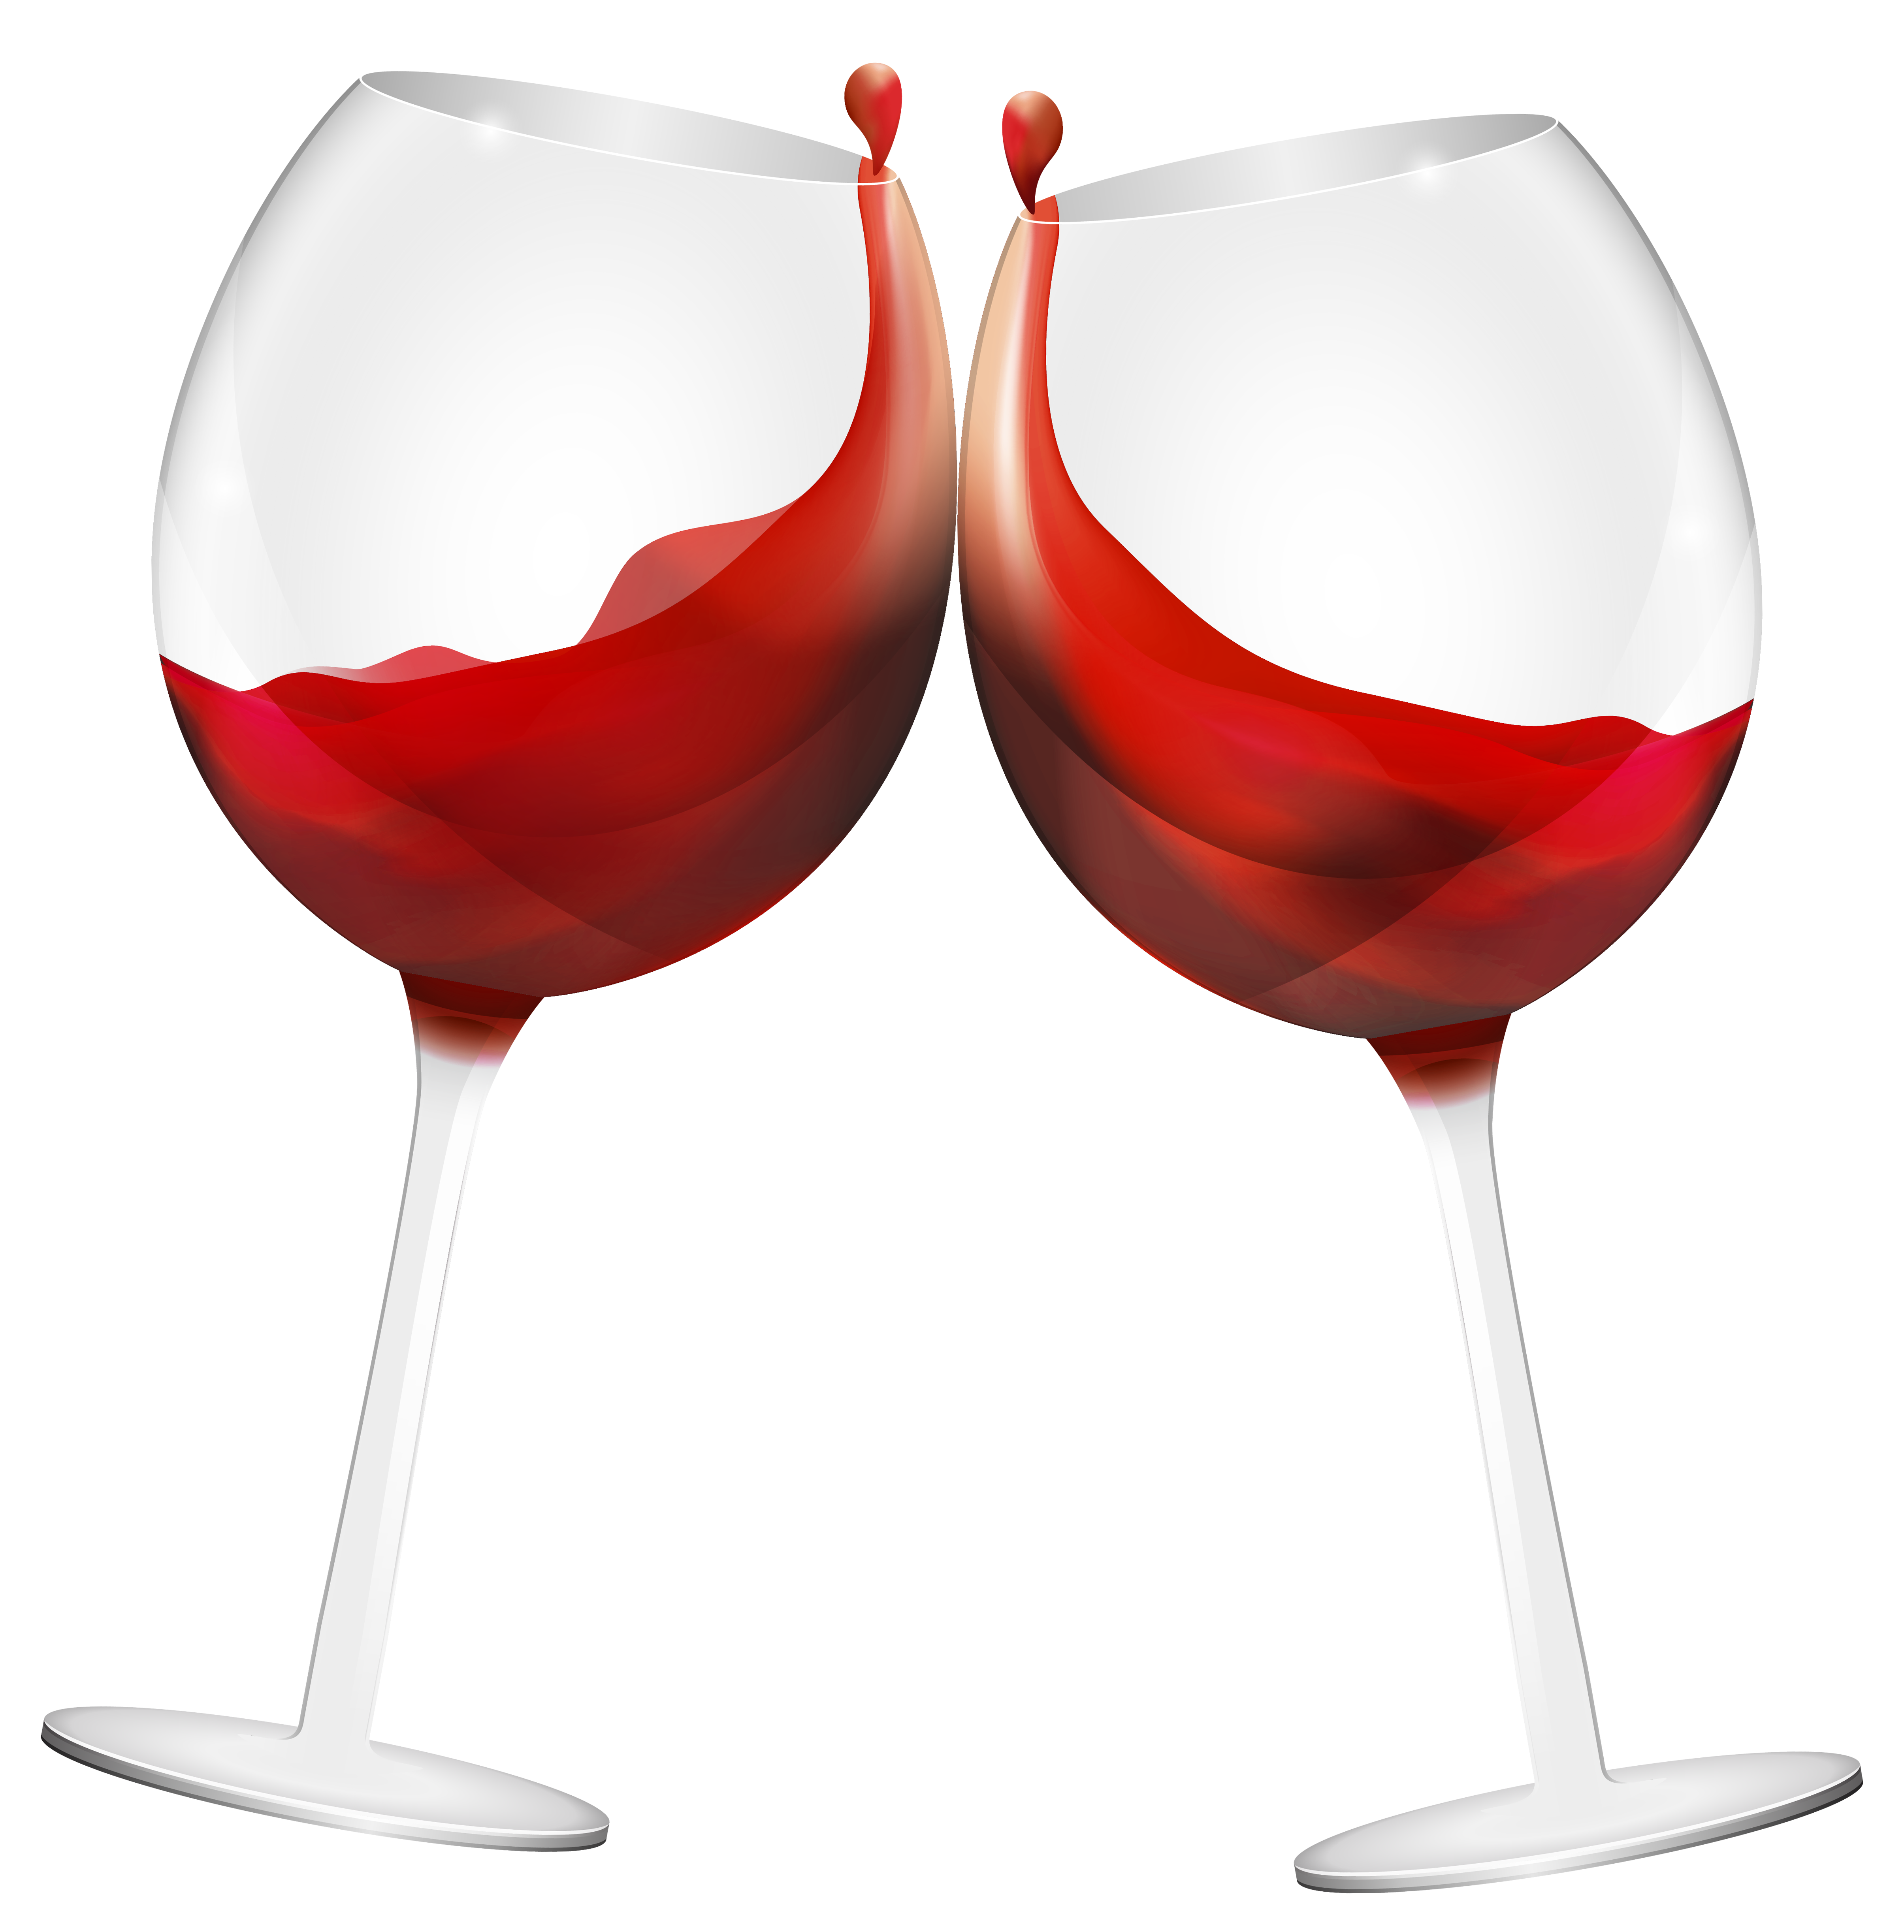 Wine Glasses Clipart.